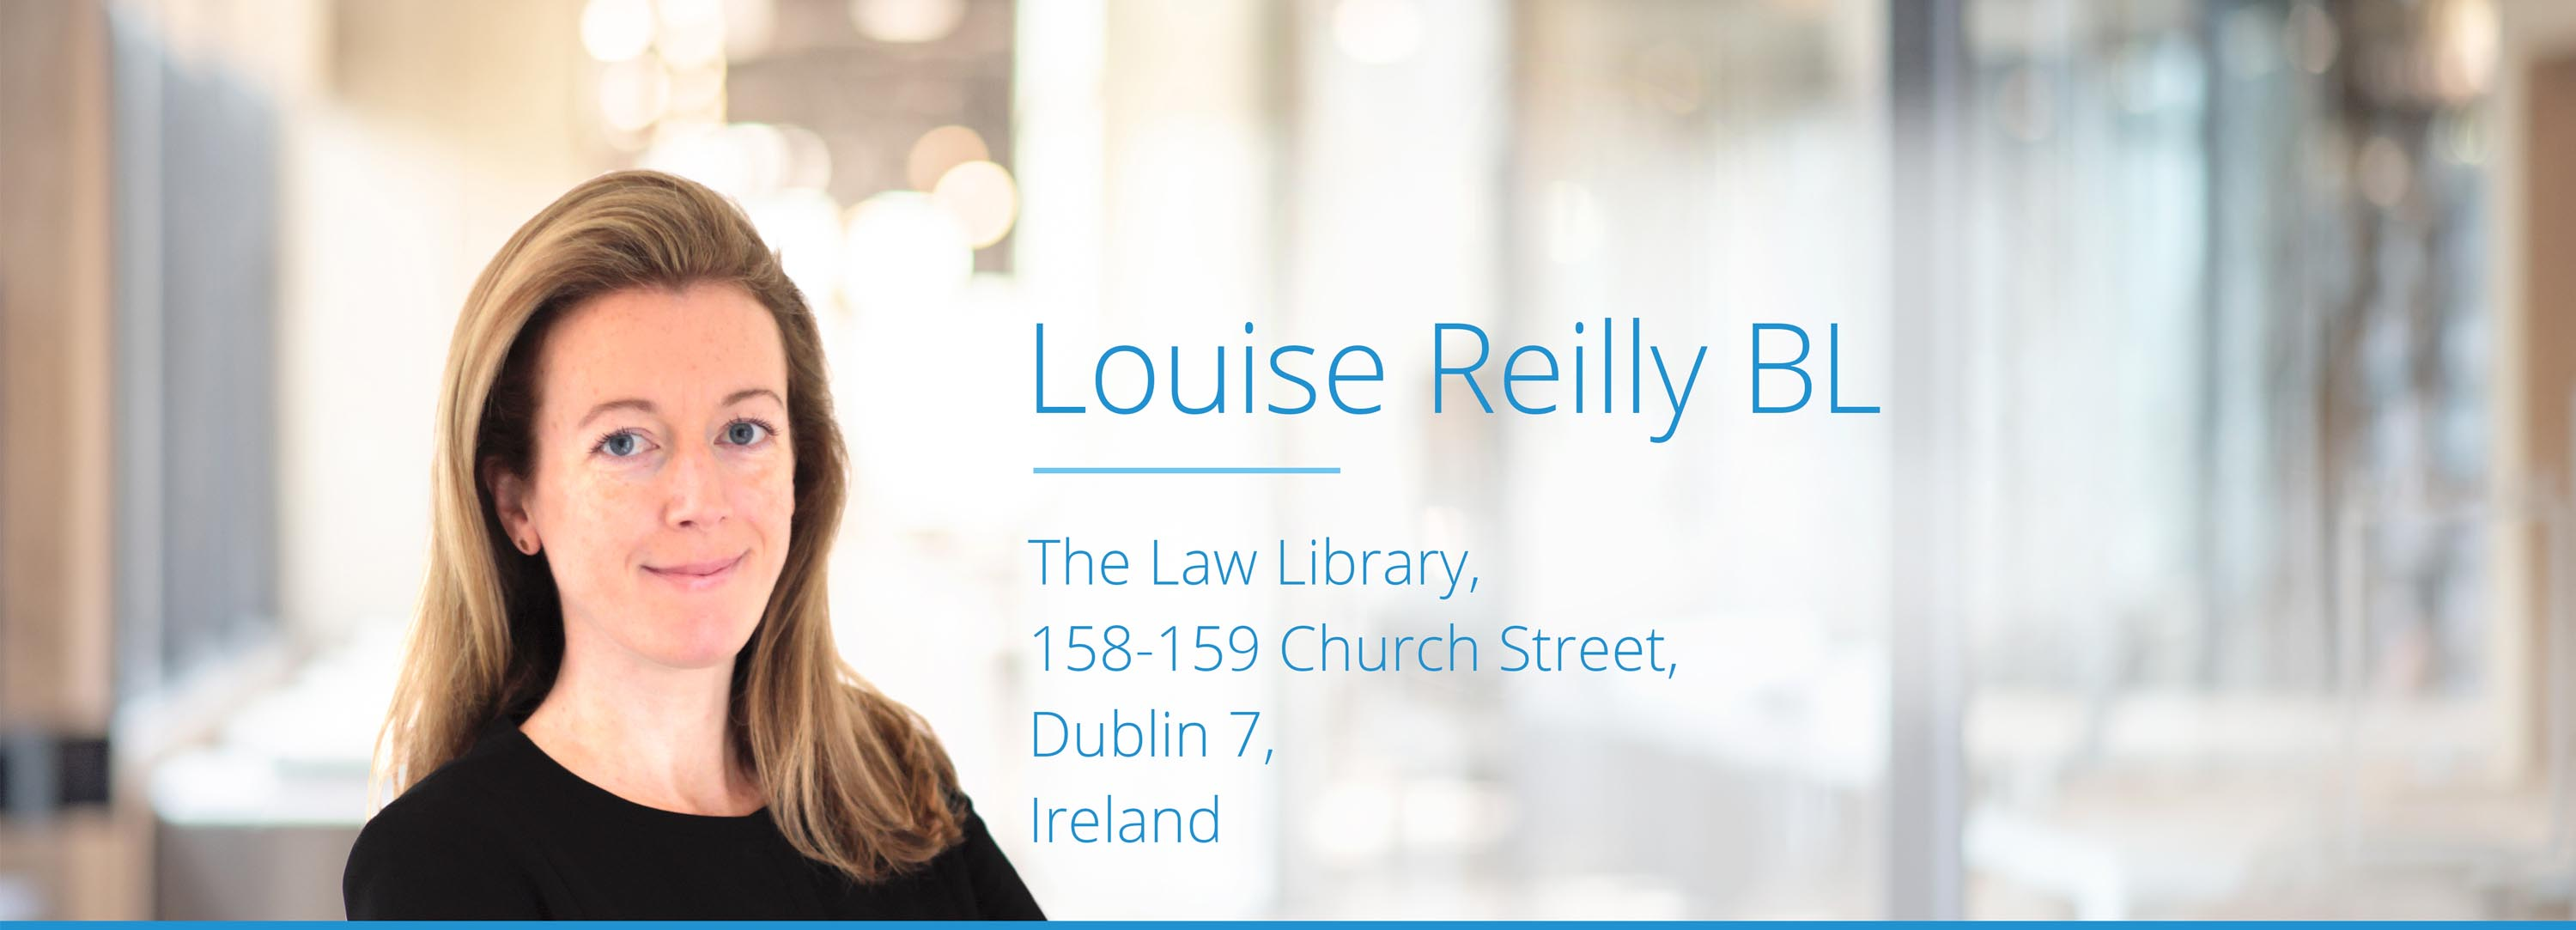 Louise Reilly BL